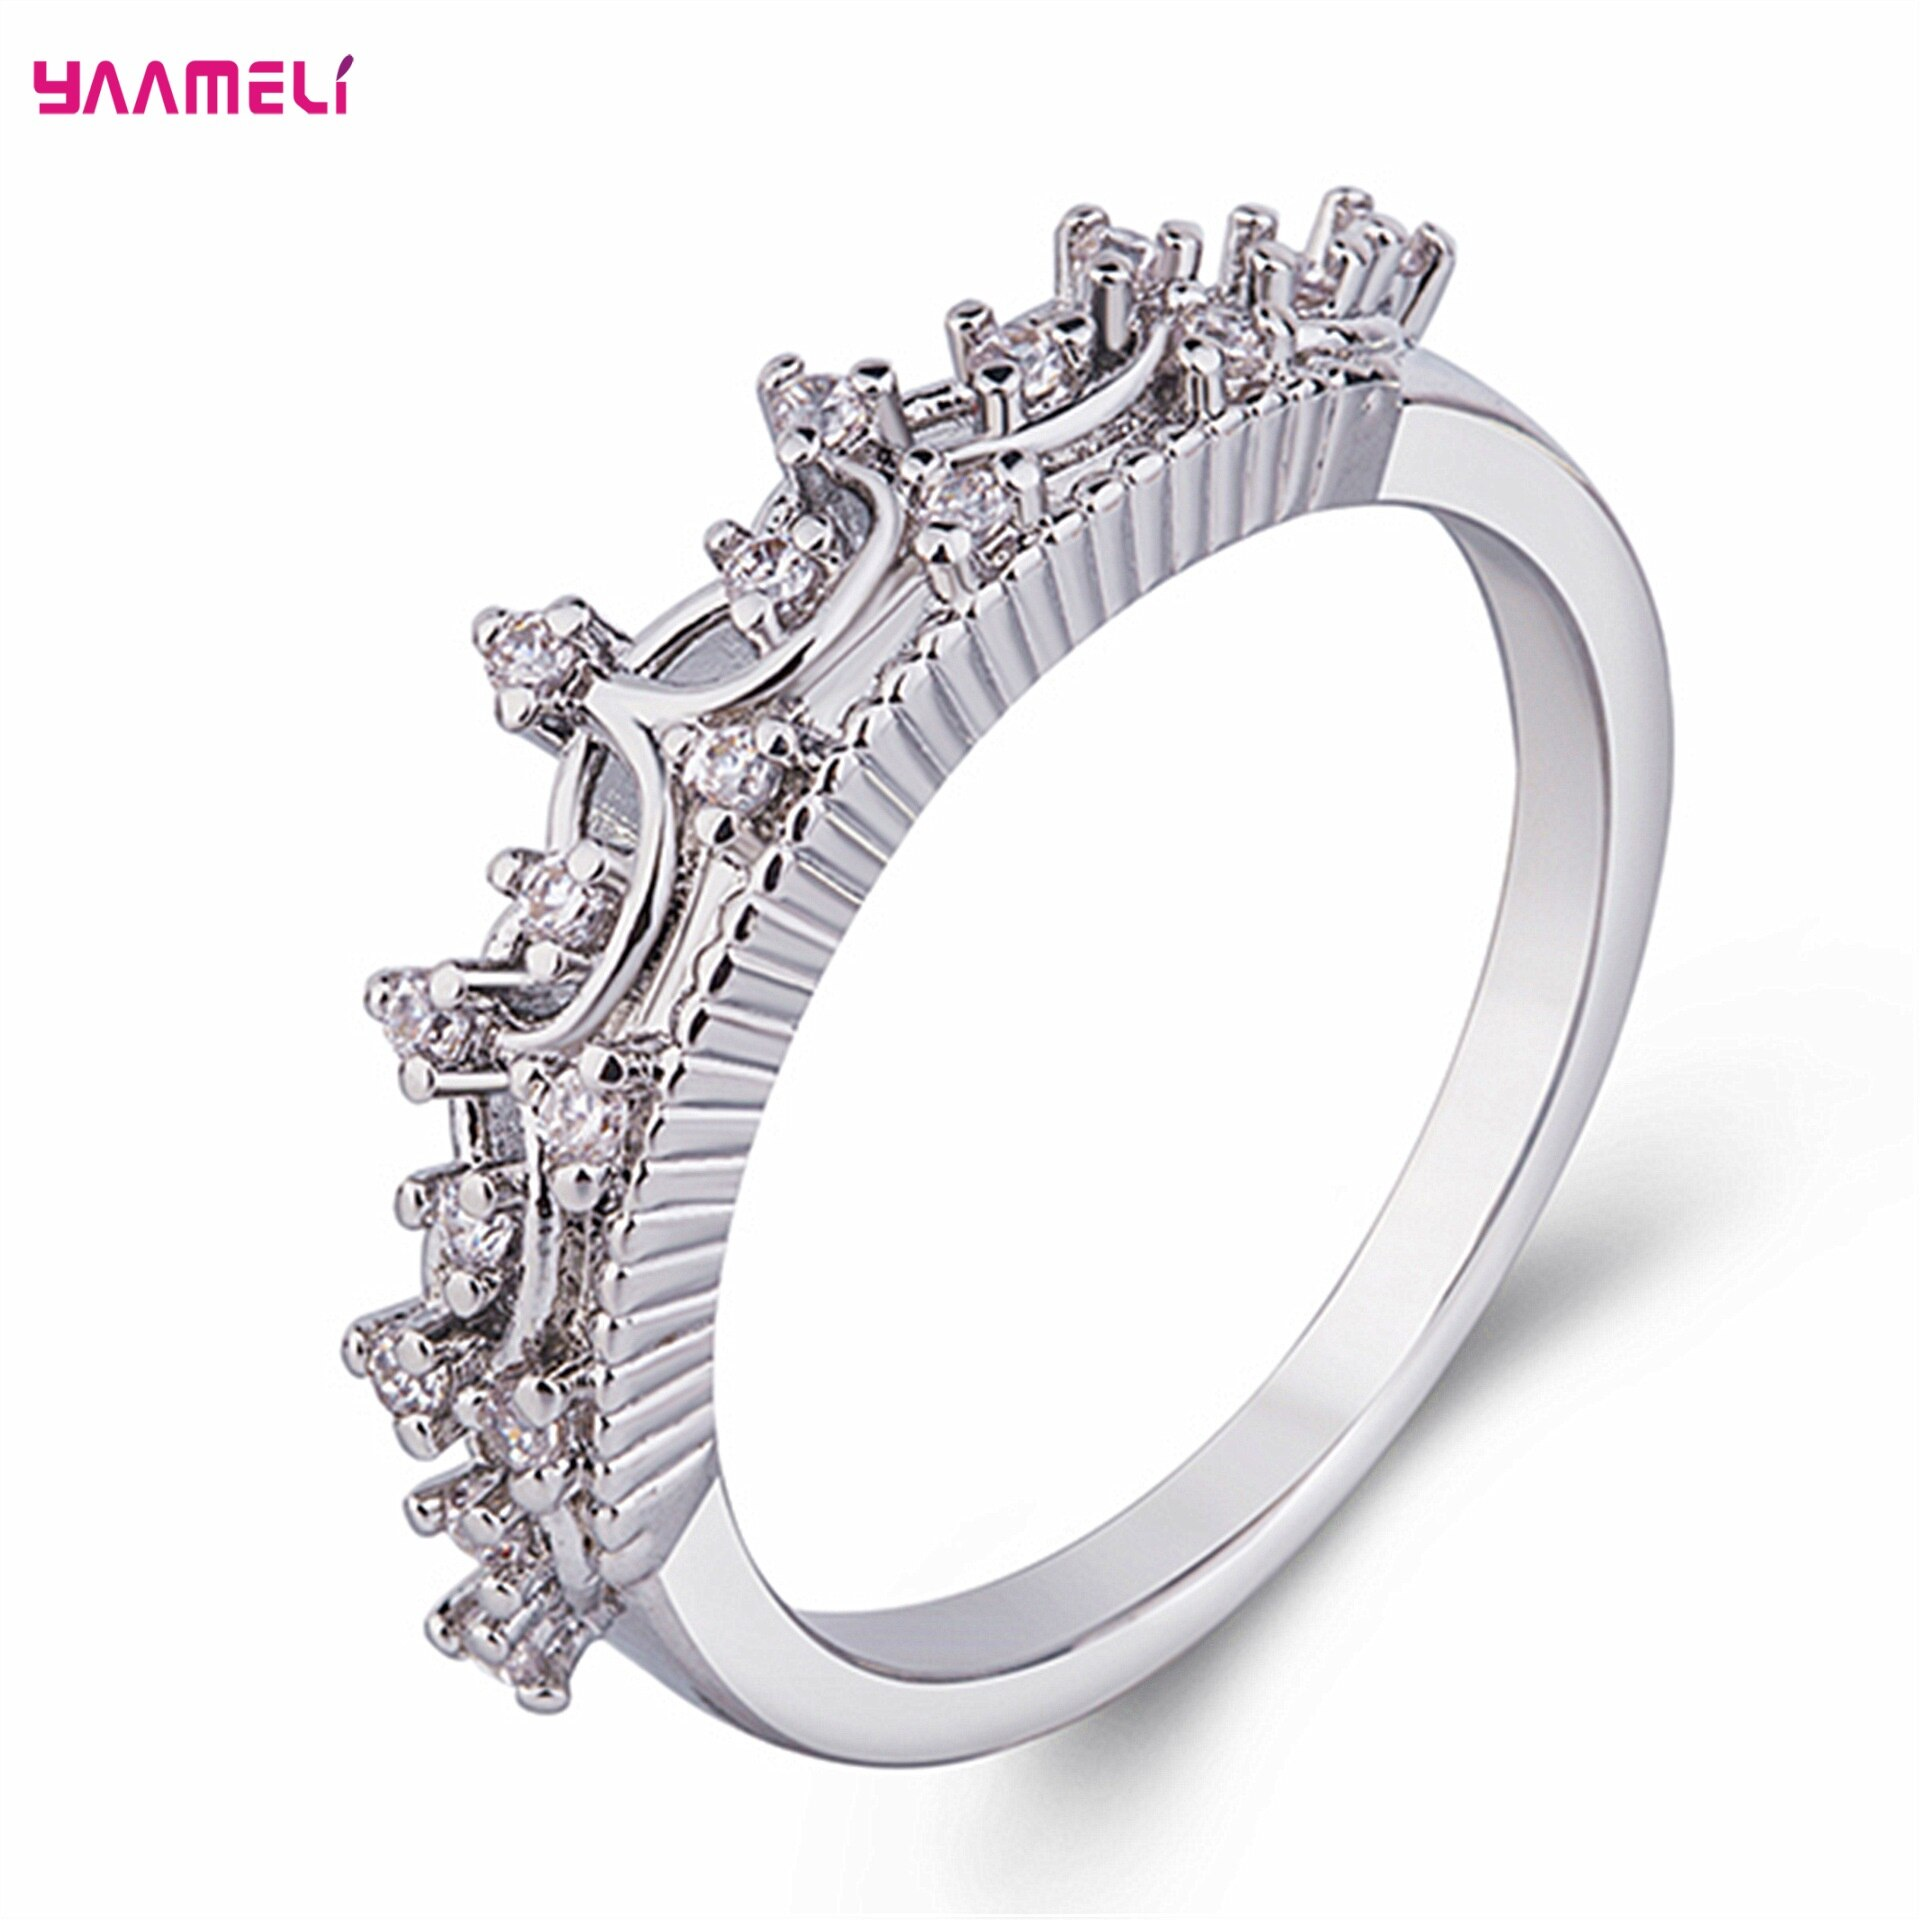 Fashion Simple Crown Cubic Zirconia 925 Sterling Silver Wedding Rings For Women Finger Ring Jewelry Gifts Bijoux